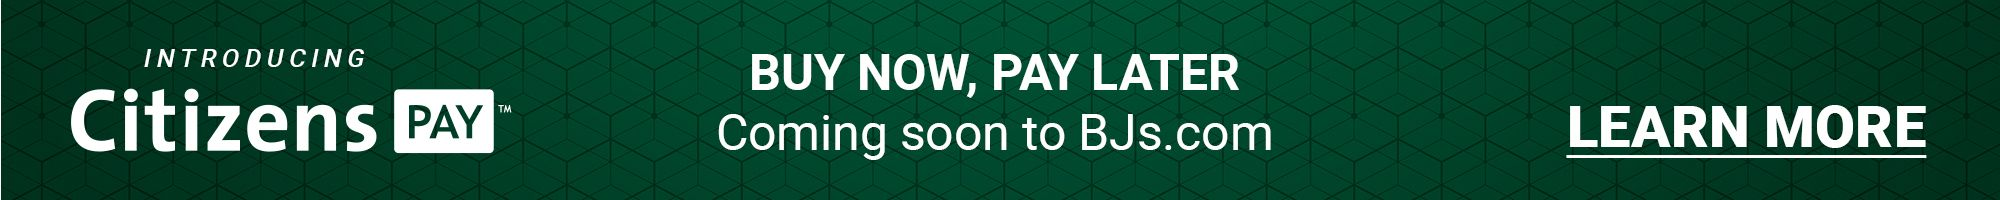 Introducing Citizens Pay. Buy now, pay later, coming soon to BJs.com. Click to learn more.